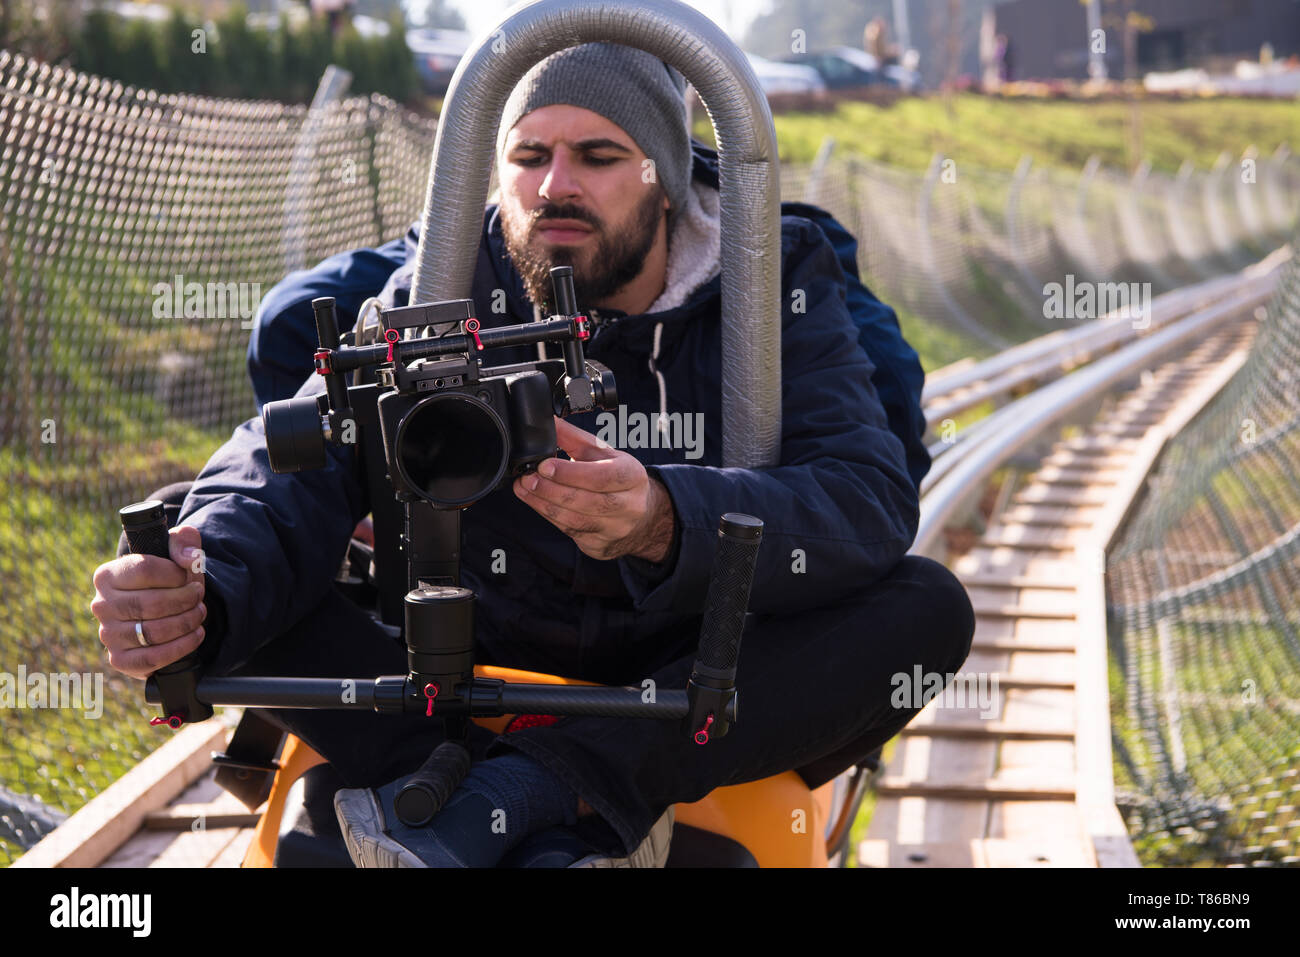 young videographer with gimball video slr at work on alpine coaster - Stock Image